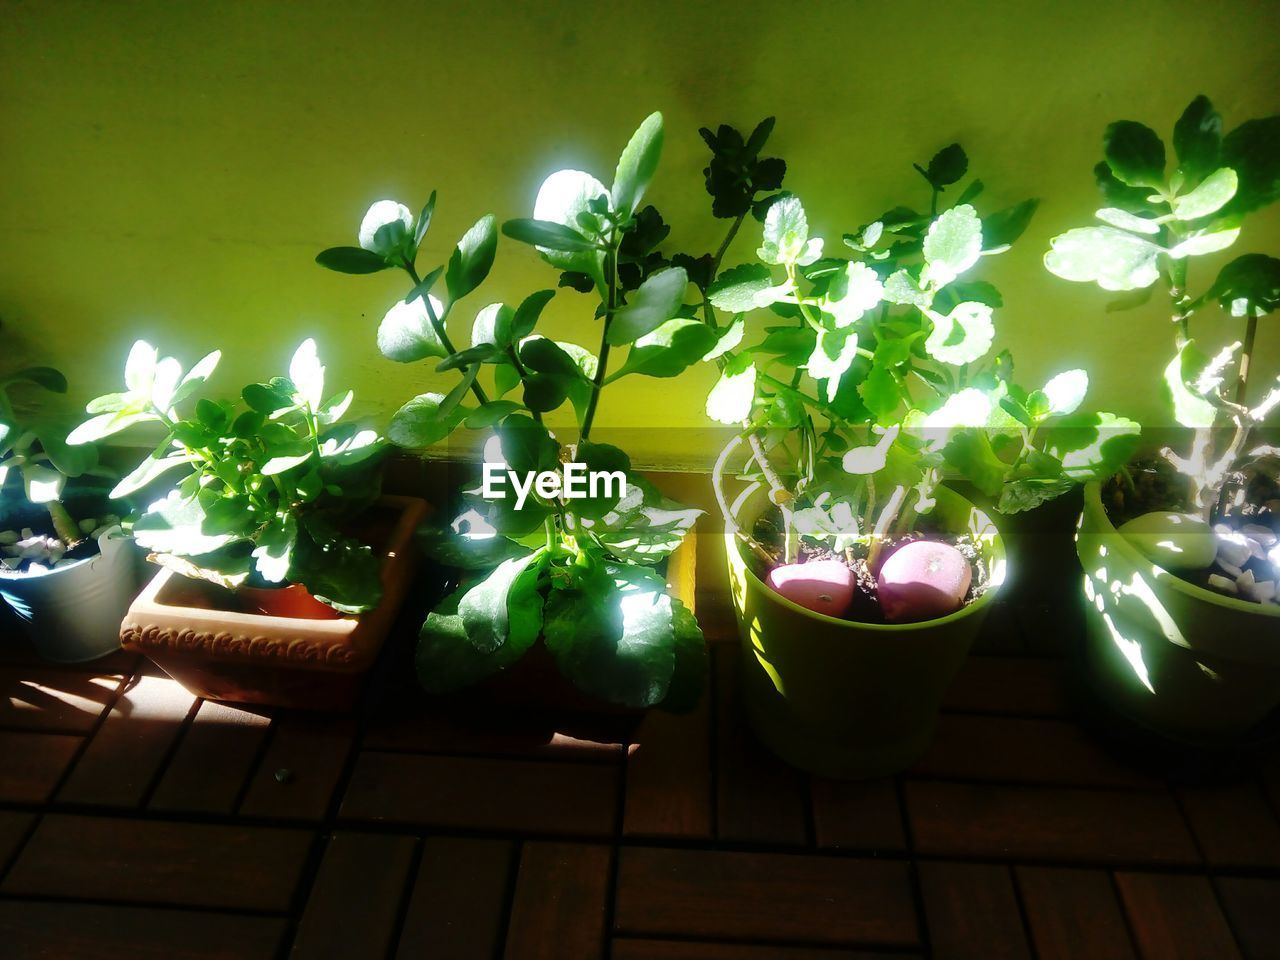 potted plant, plant, growth, no people, indoors, green color, leaf, nature, day, flower, freshness, beauty in nature, close-up